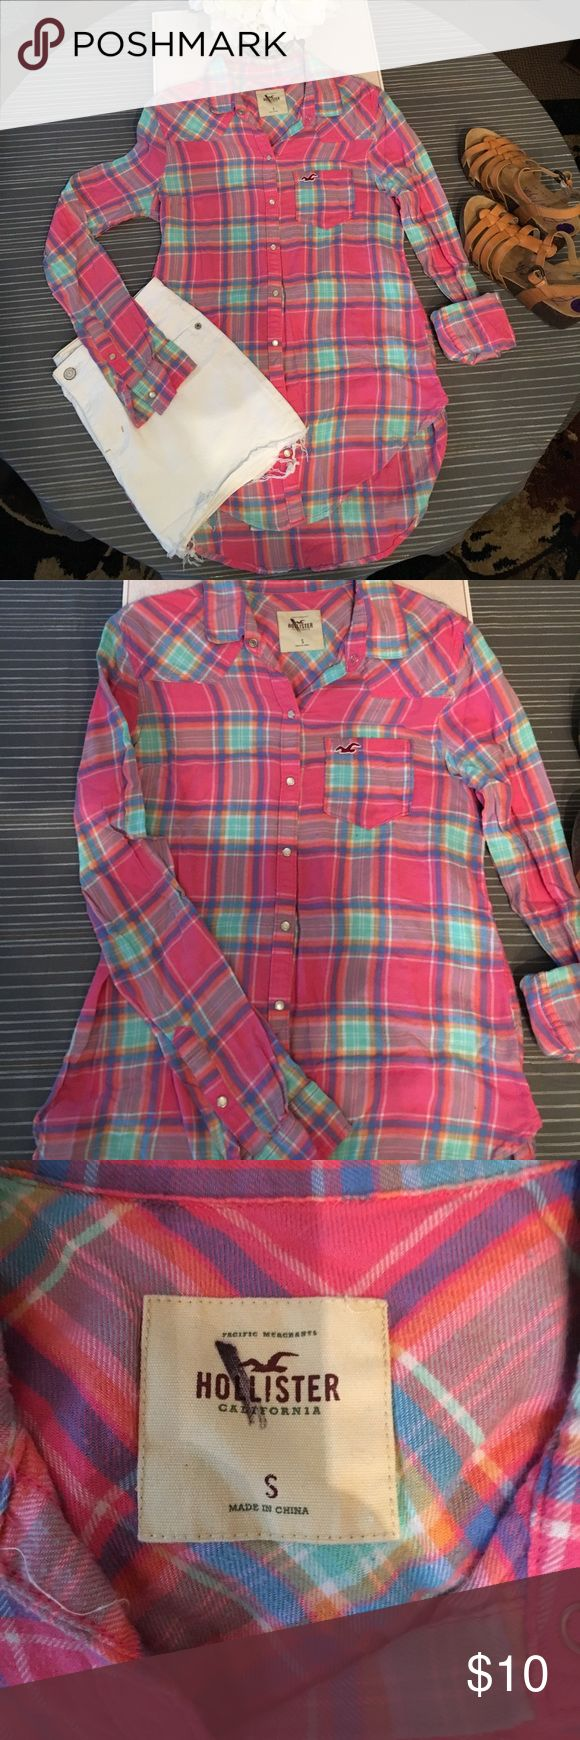 Hollister flannel Super bright colors adds a little flare to your traditional flannel shirt. Longer in length, great with leggings or skinnys. Hollister Tops Button Down Shirts